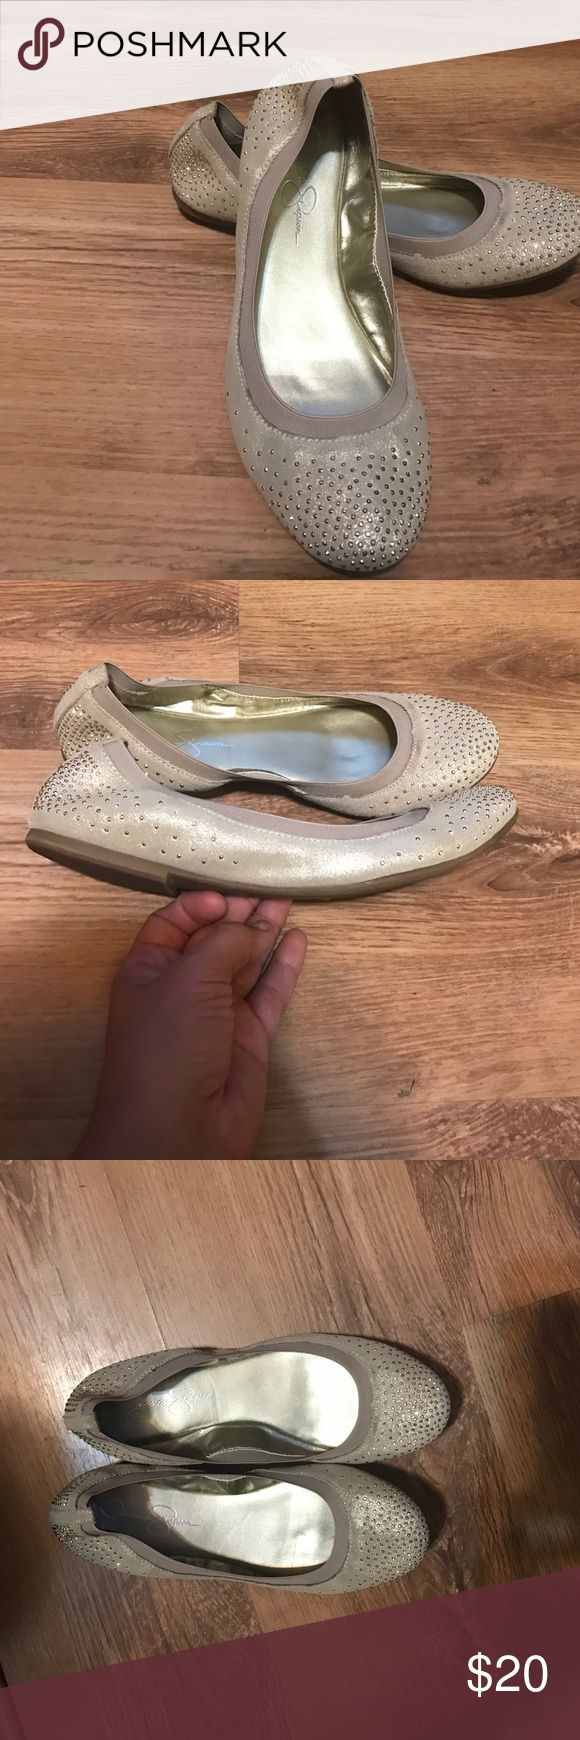 Jessica Simpson Flats Like new only worn a couple times Jessica Simpson Shoes Flats & Loafers